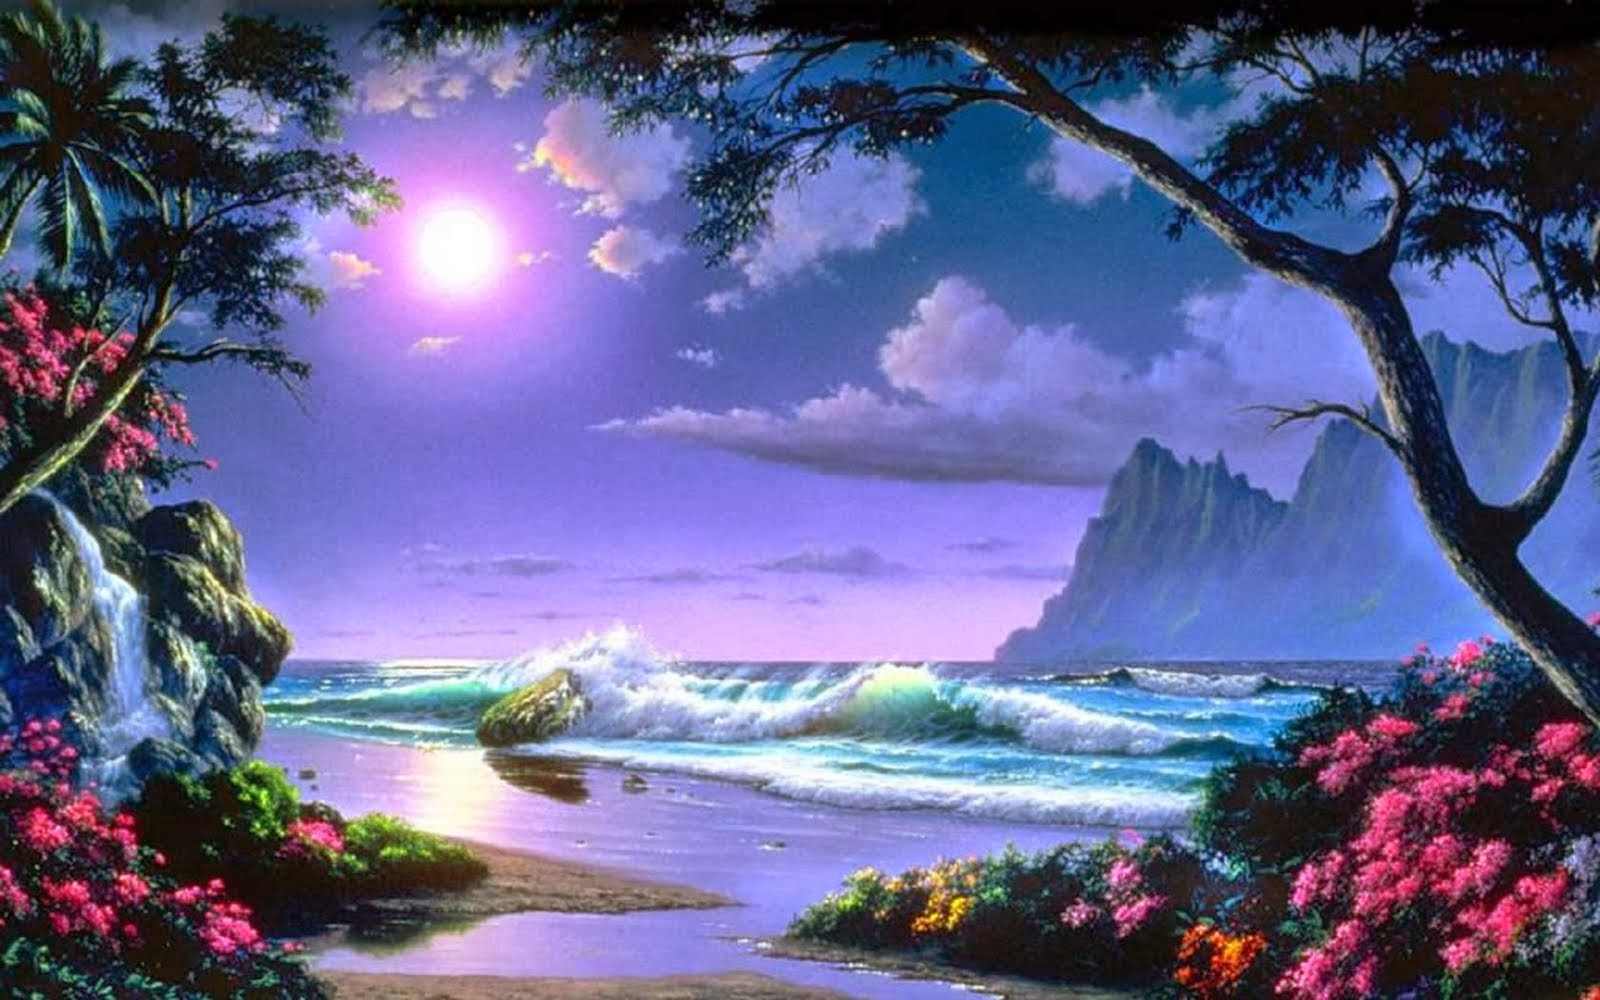 beautiful hd images wallpapers beautiful hd images wallpapers ...